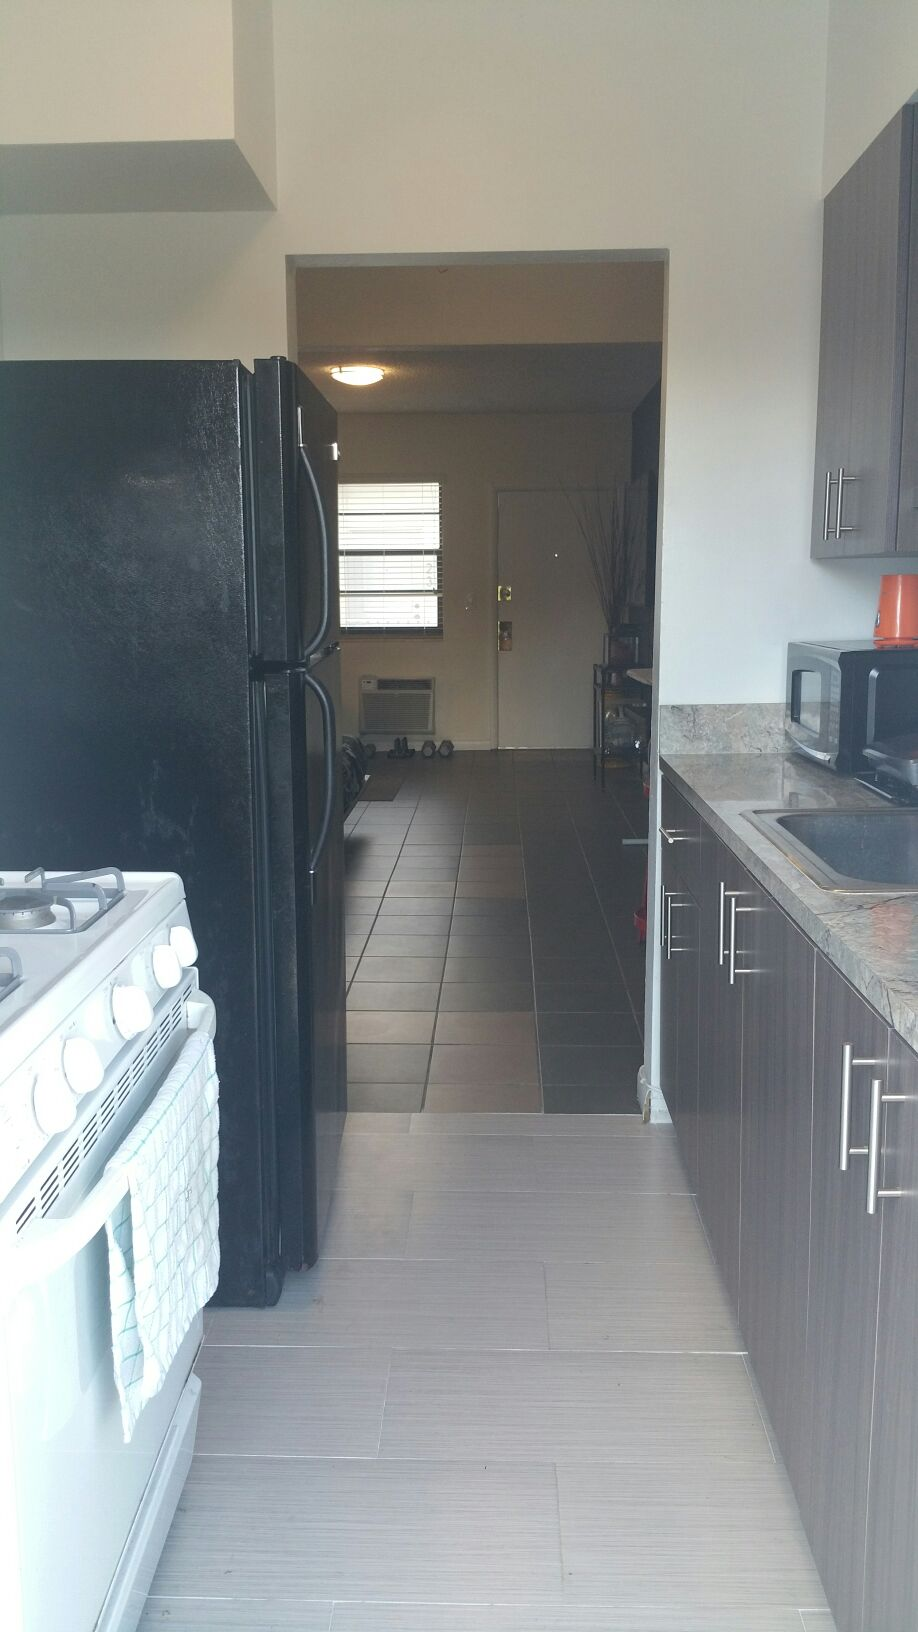 Kitchen with refrigerator, stove, microwave, George Foreman grill